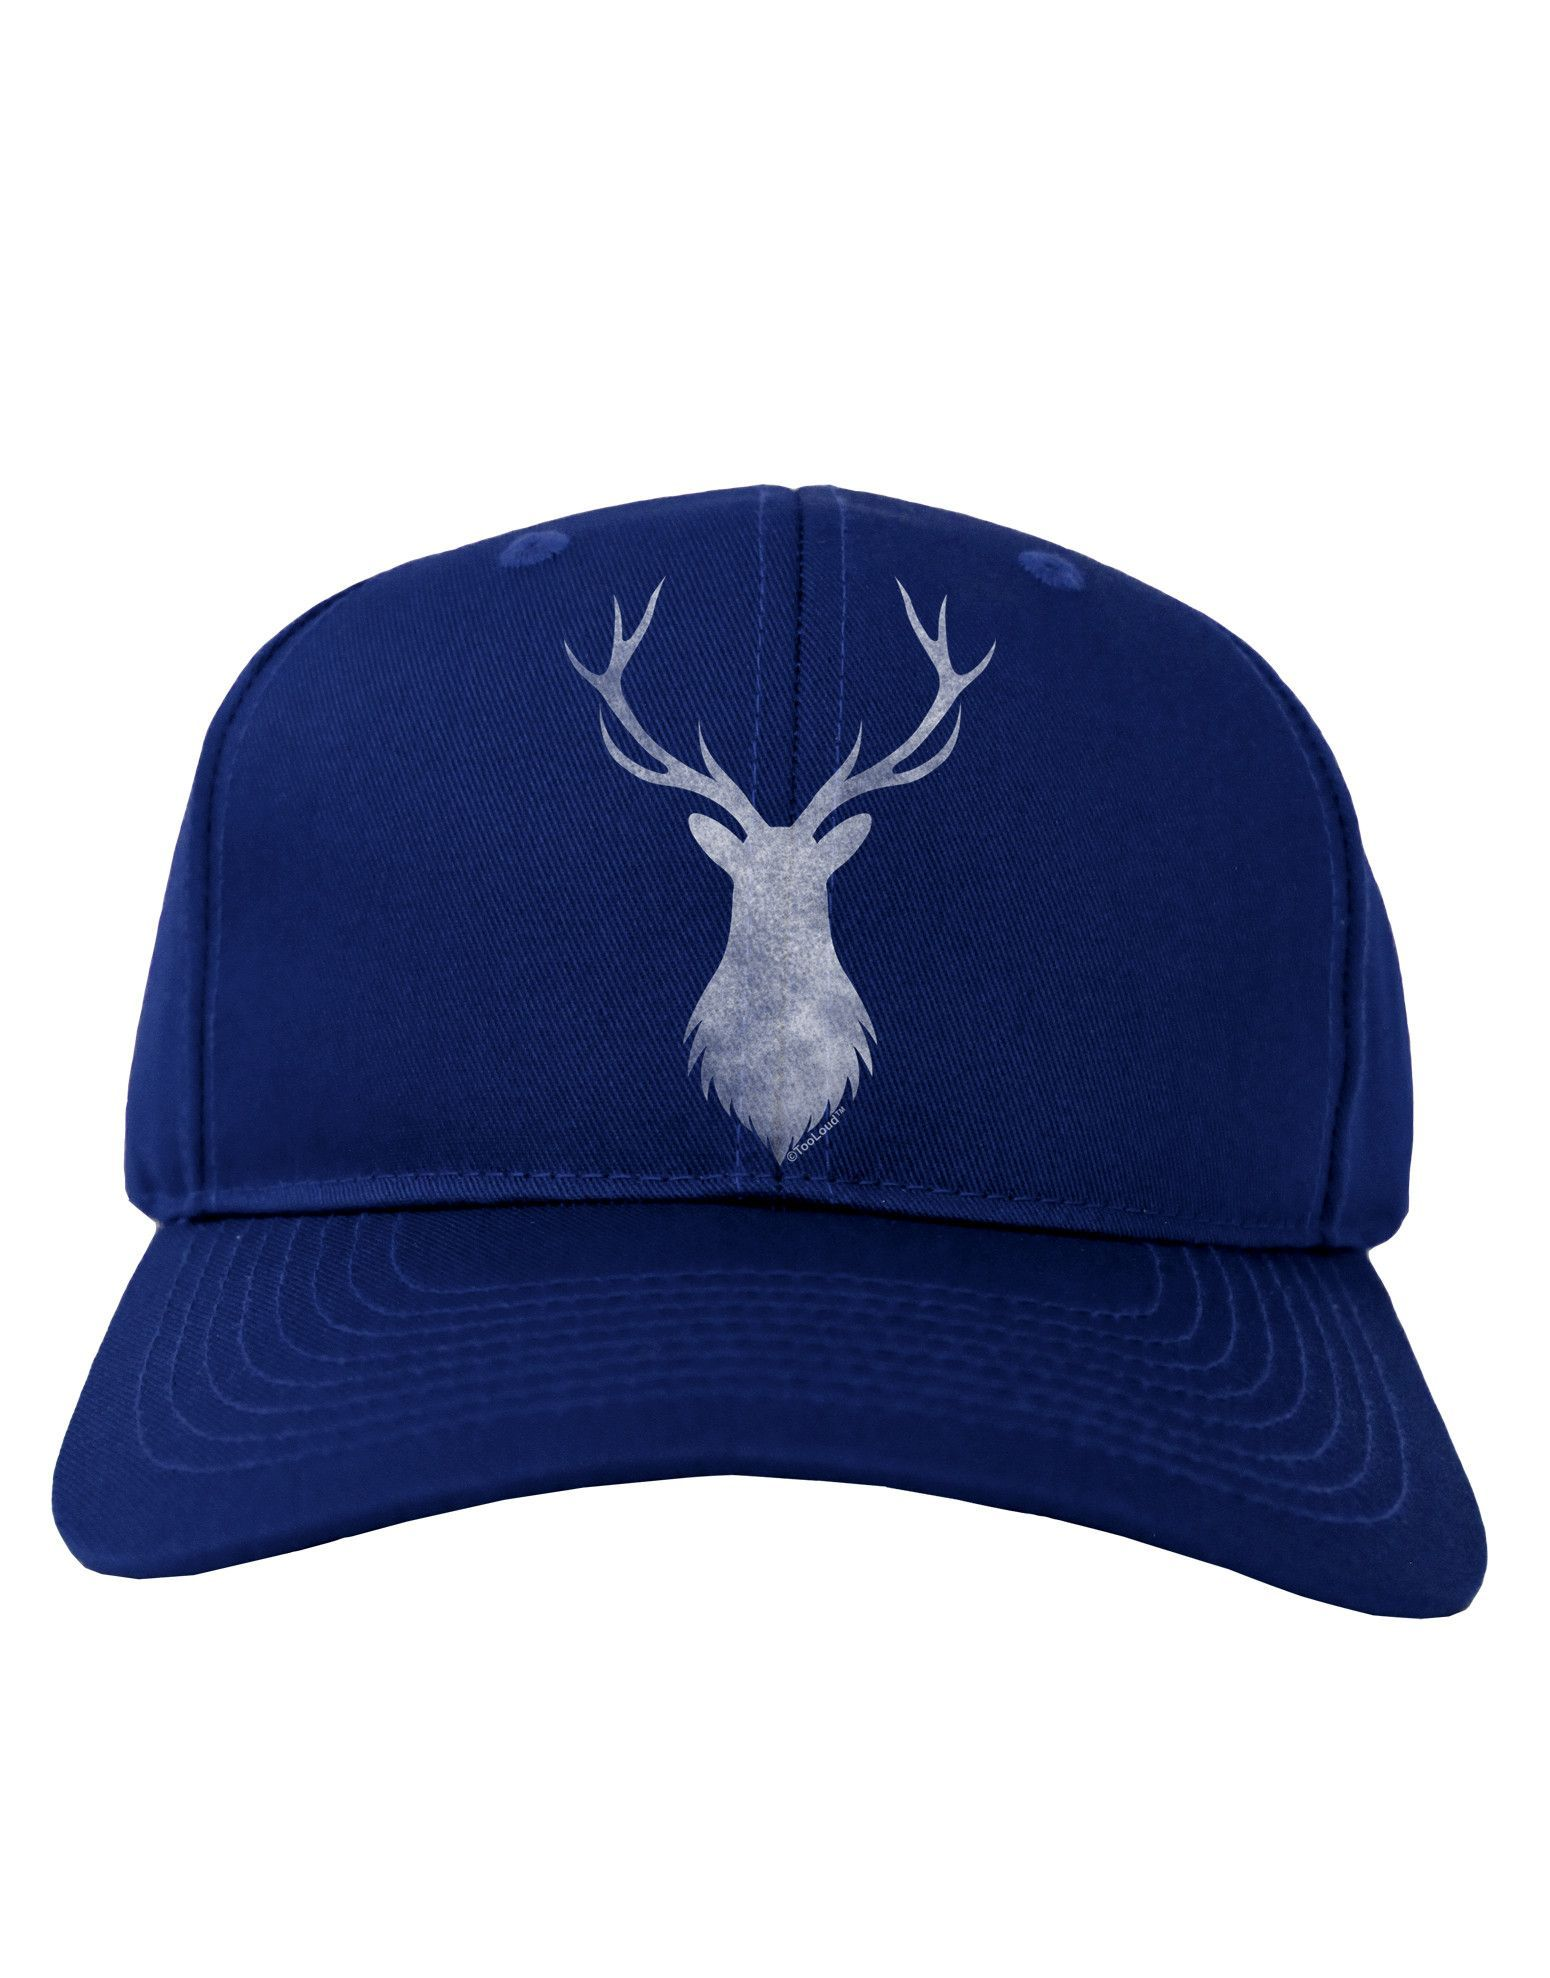 TooLoud Majestic Stag Distressed Adult Dark Baseball Cap Hat